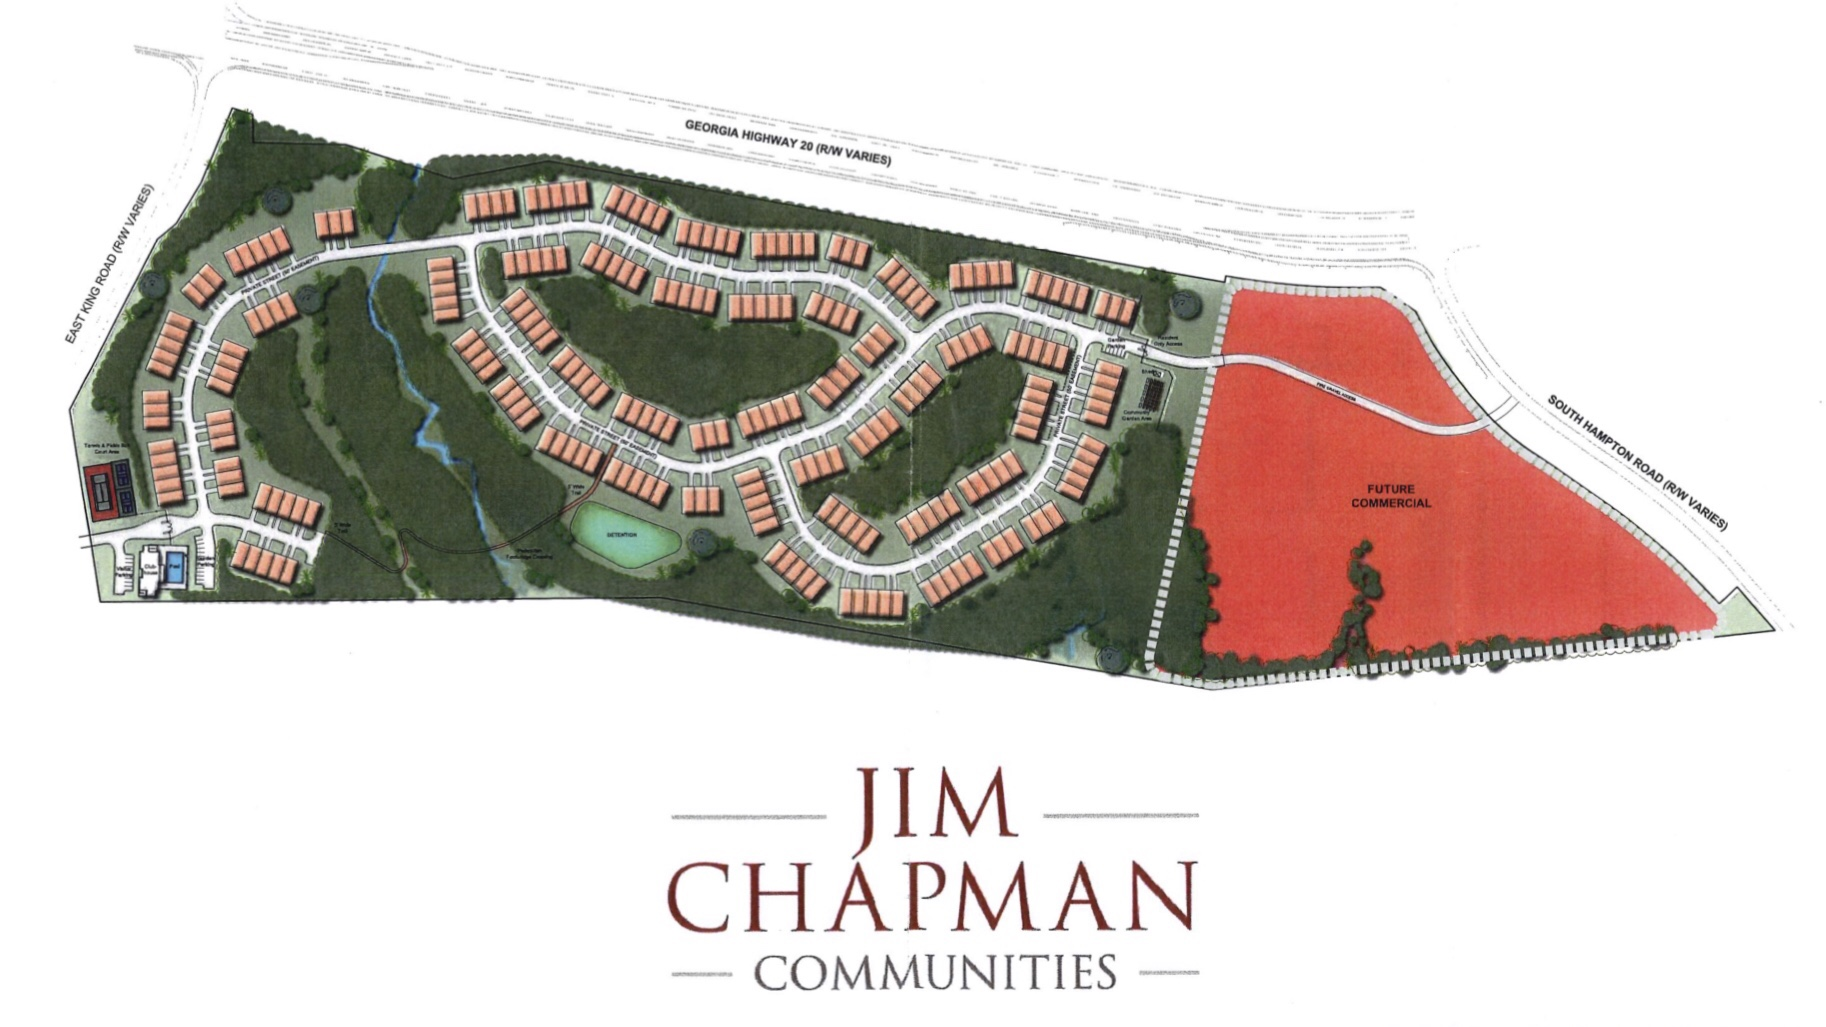 Concept site plan for the Cottages at Southampton